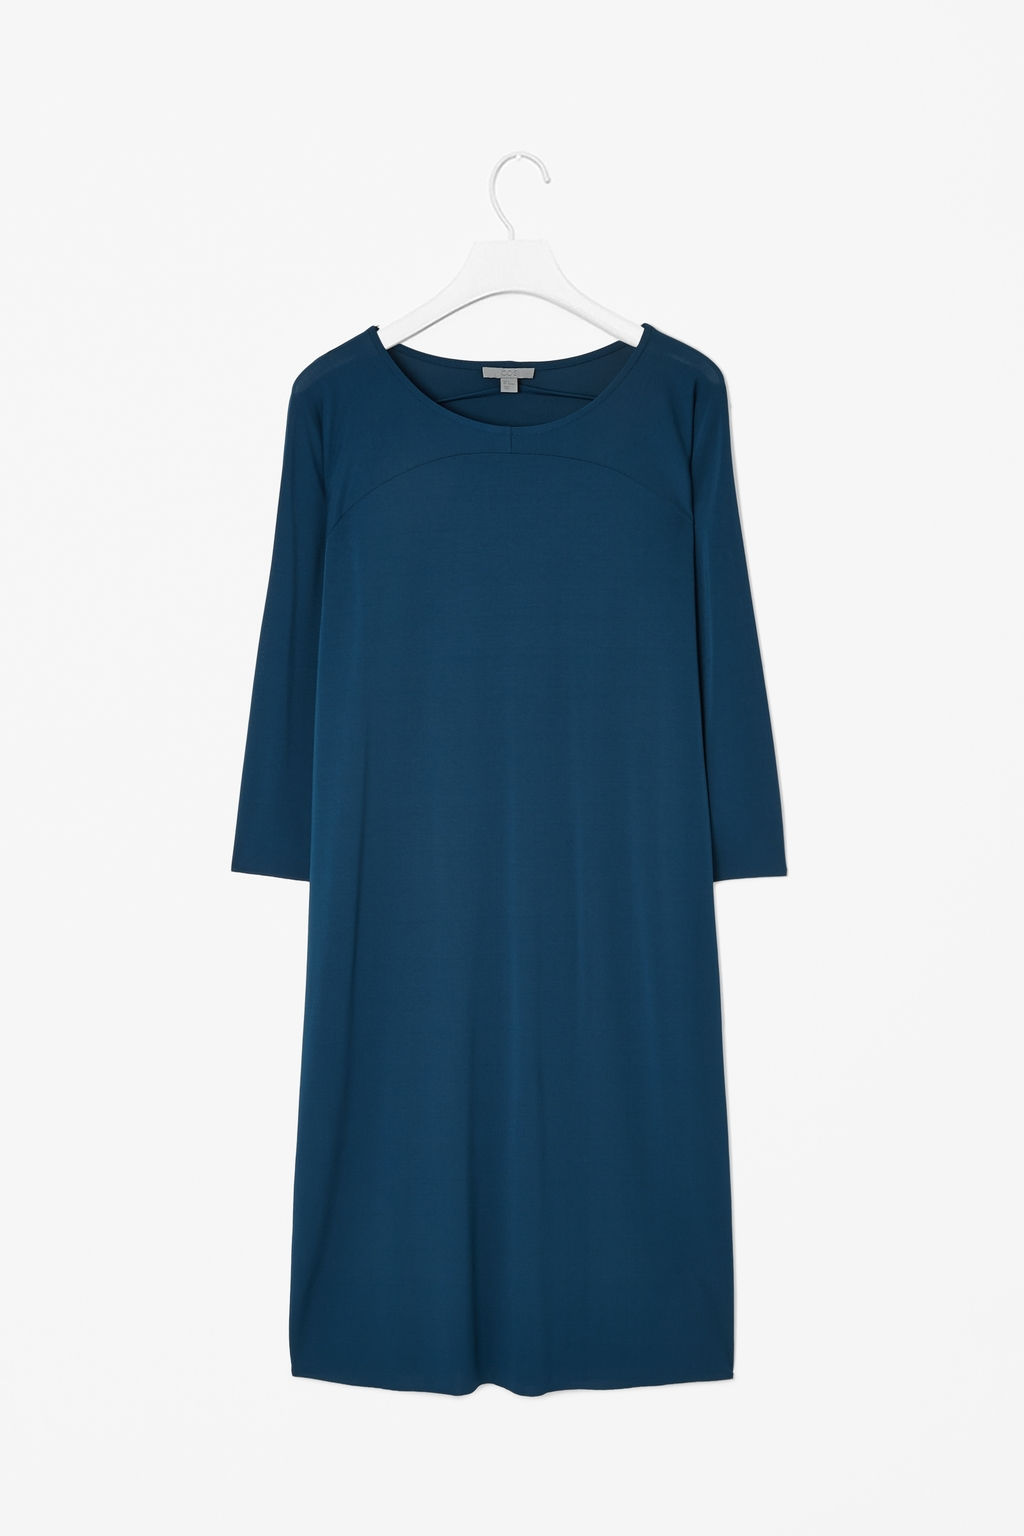 Curved Panel Dress - style: shift; neckline: round neck; fit: loose; pattern: plain; predominant colour: navy; occasions: casual, evening; length: just above the knee; fibres: viscose/rayon - stretch; sleeve length: 3/4 length; sleeve style: standard; pattern type: fabric; texture group: jersey - stretchy/drapey; season: s/s 2014